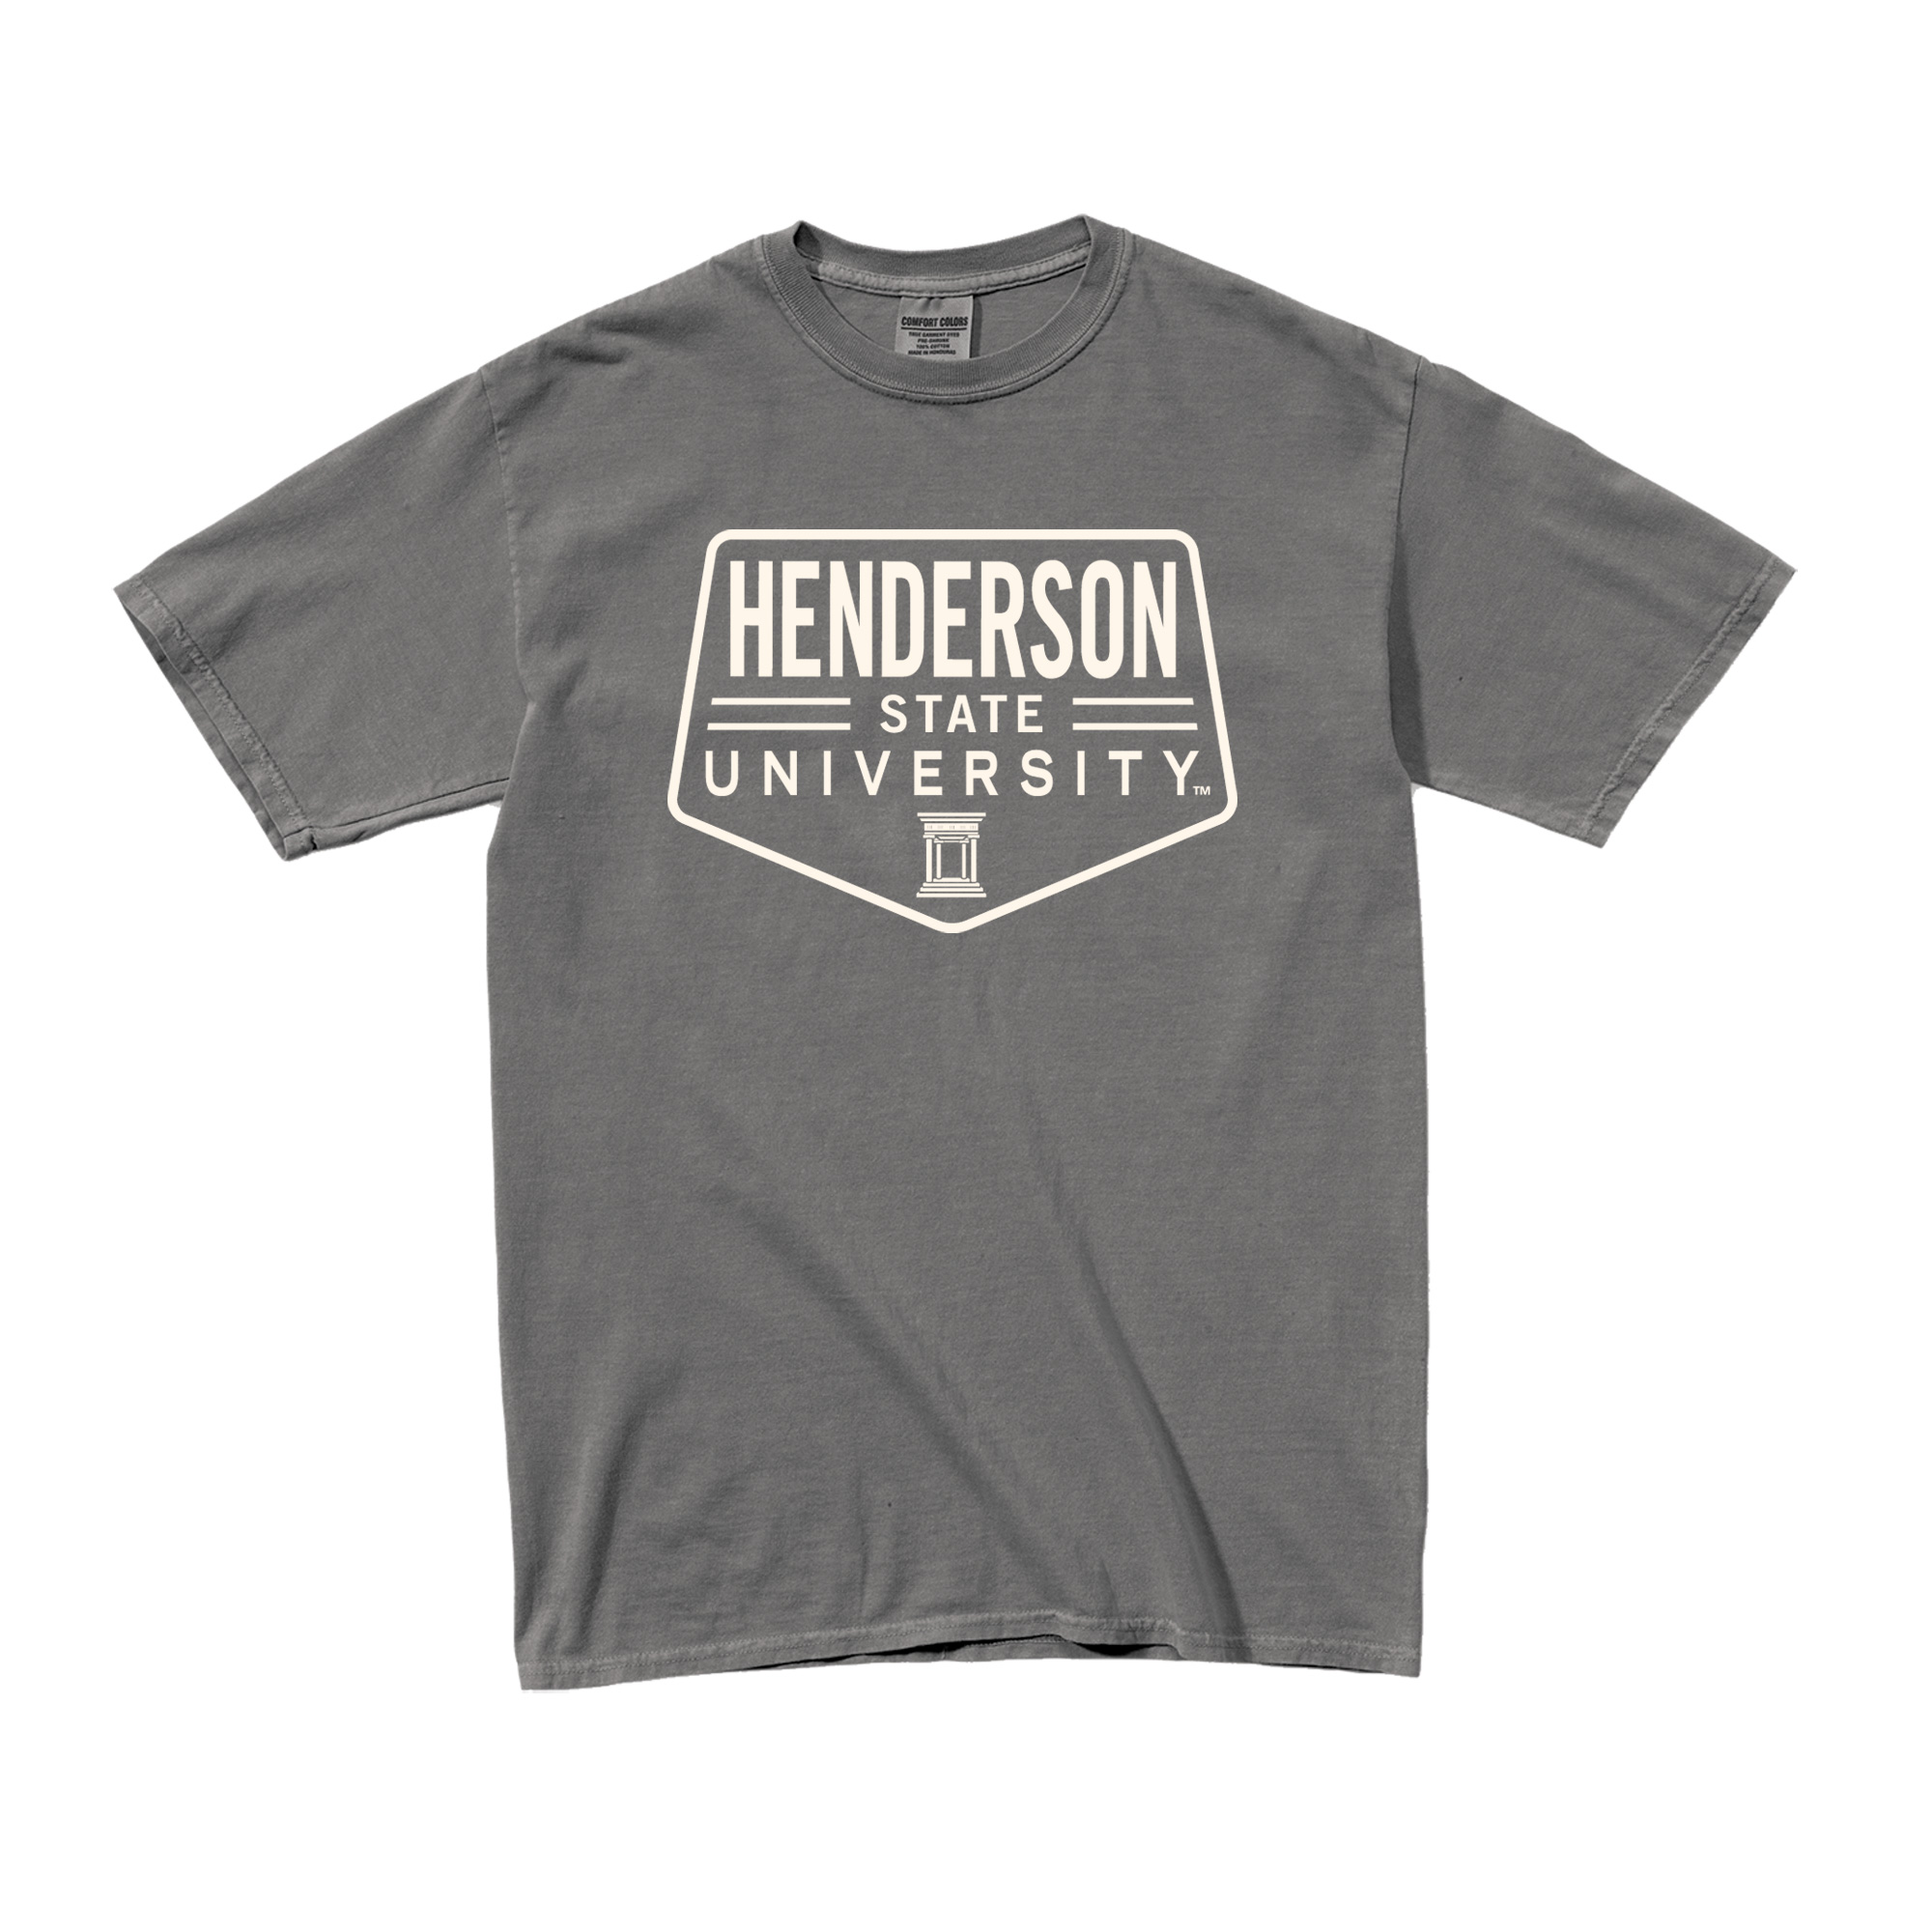 Henderson State University Comfort Colors Ringspun T-Shirt